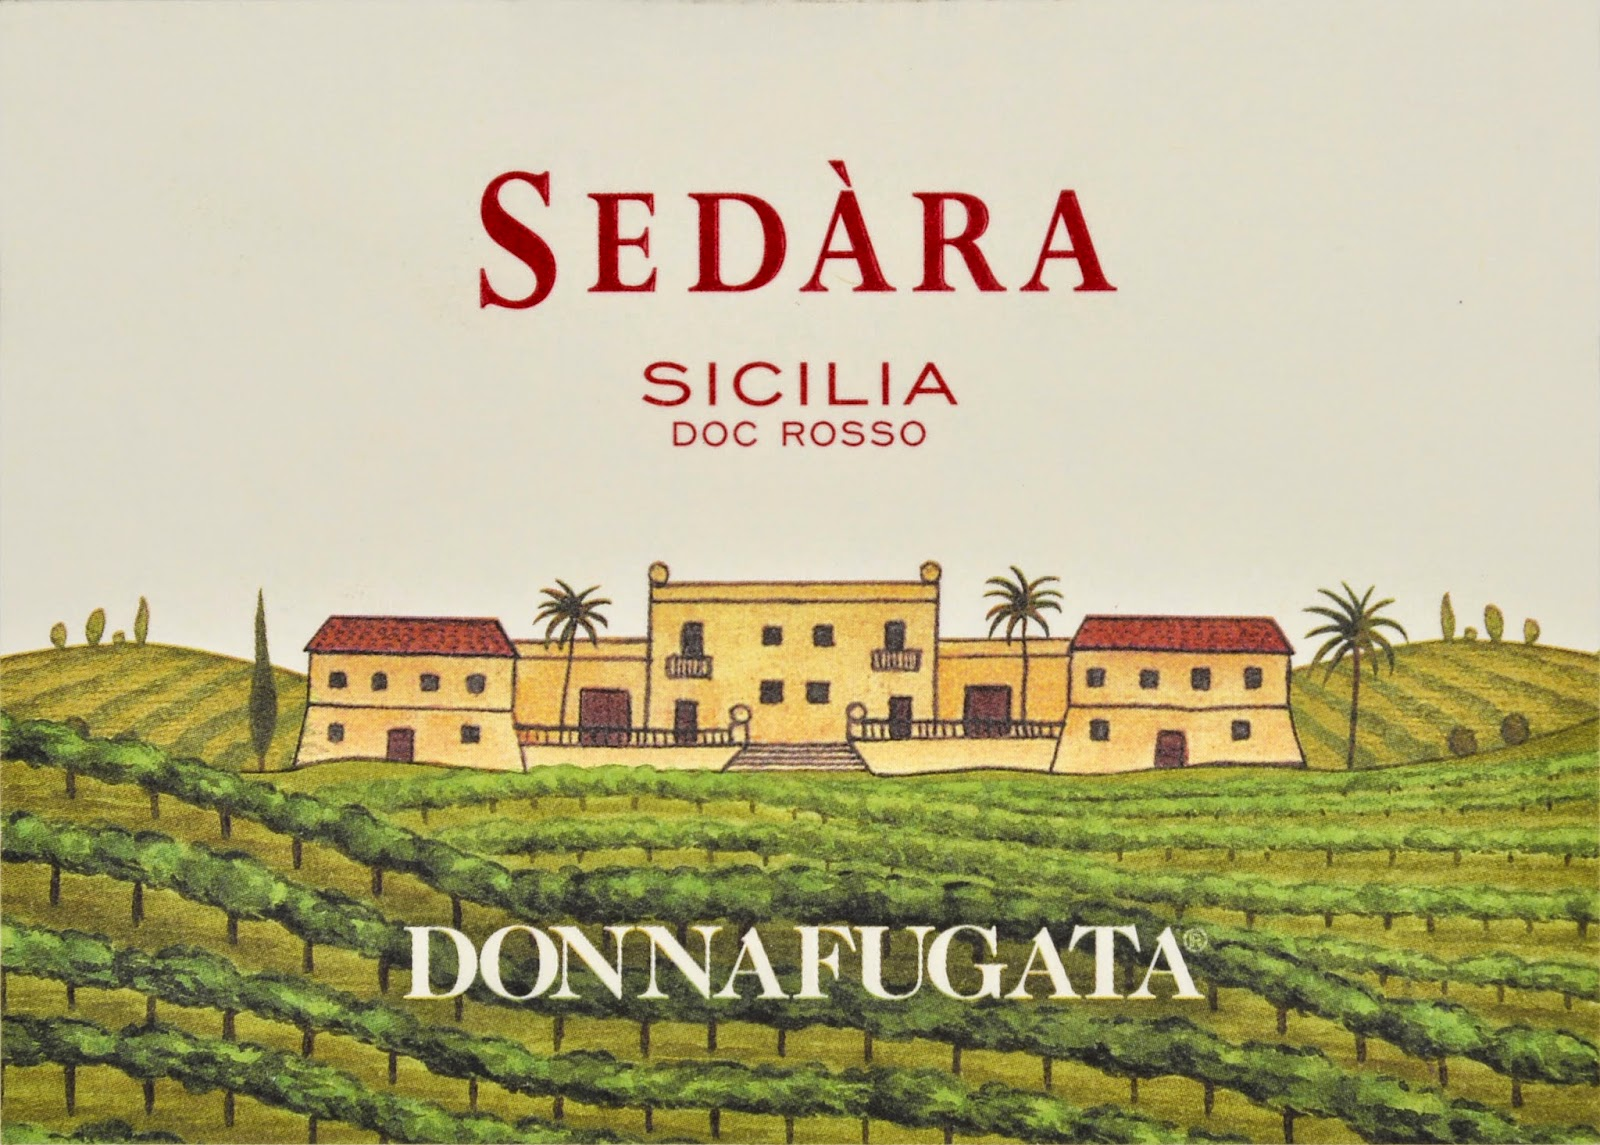 Sedara from Donnafugata Sicily made of nero d'avola